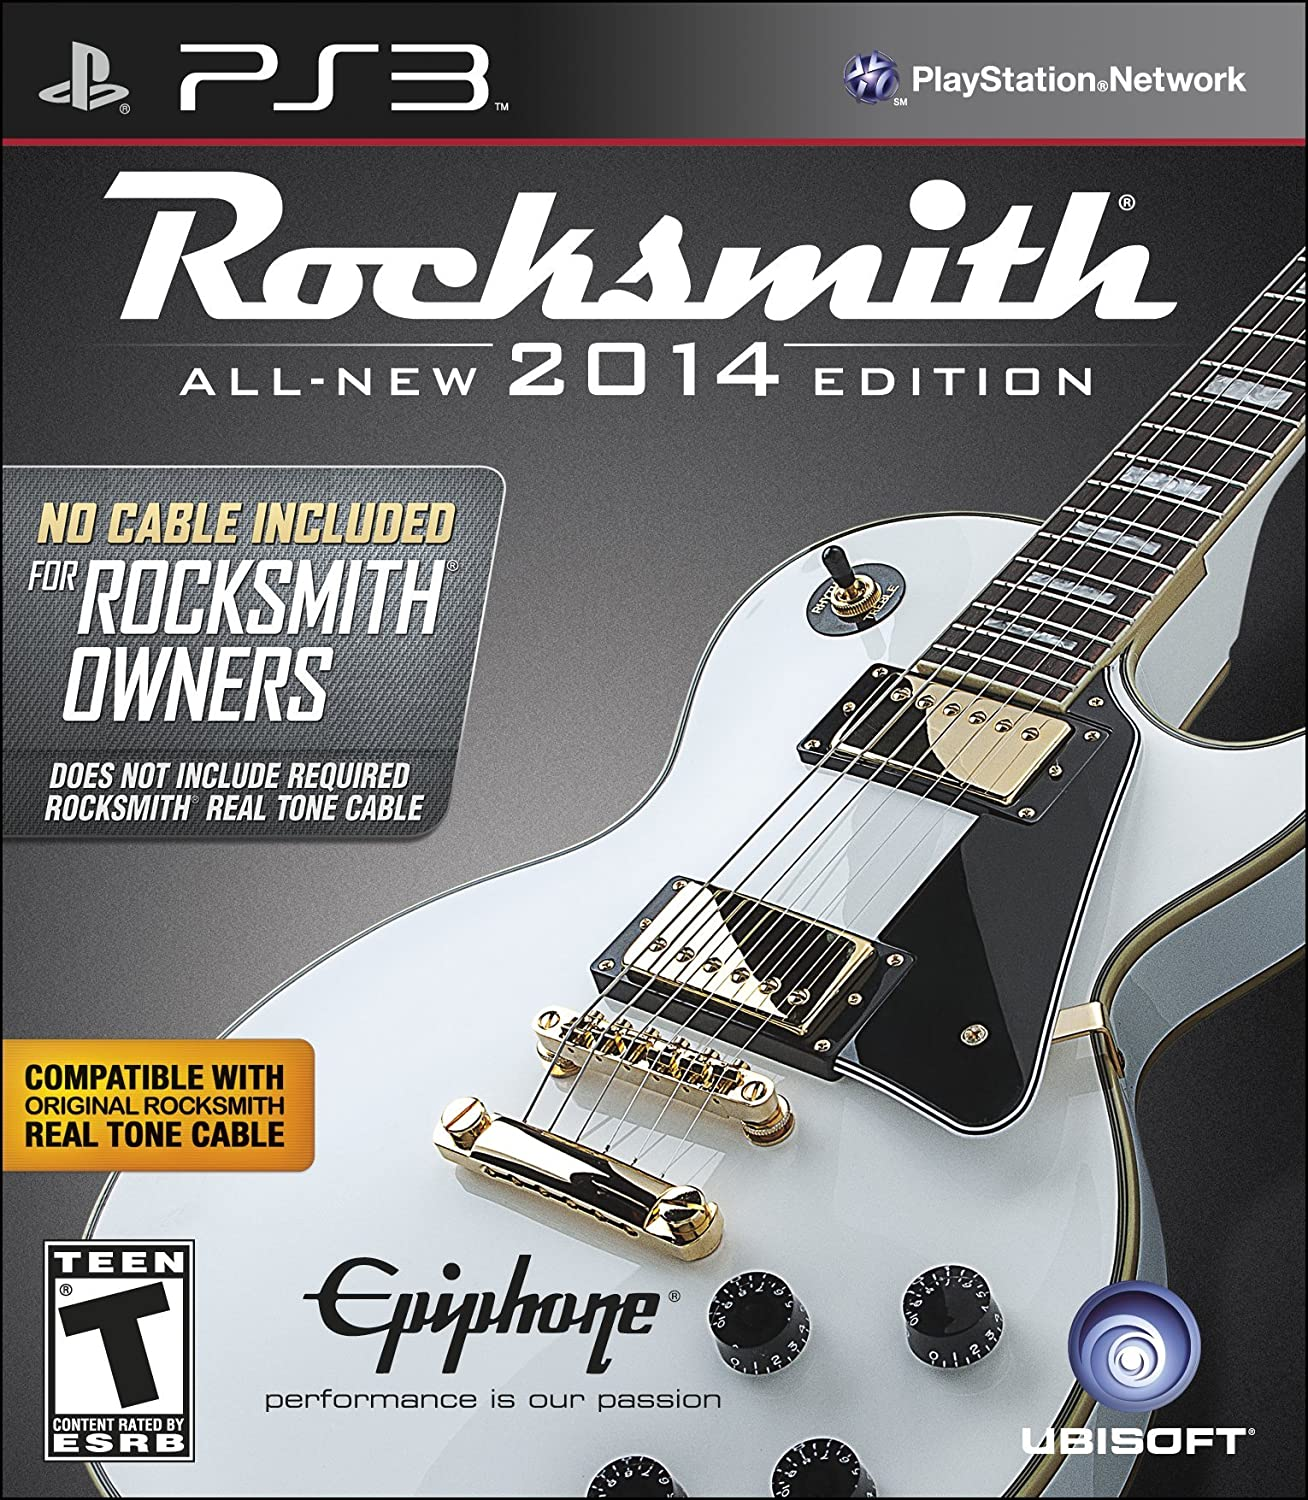 "Rocksmith 2014 Edition - ""No Cable Included"" Version for Rocksmith Owners - Playstation 3"